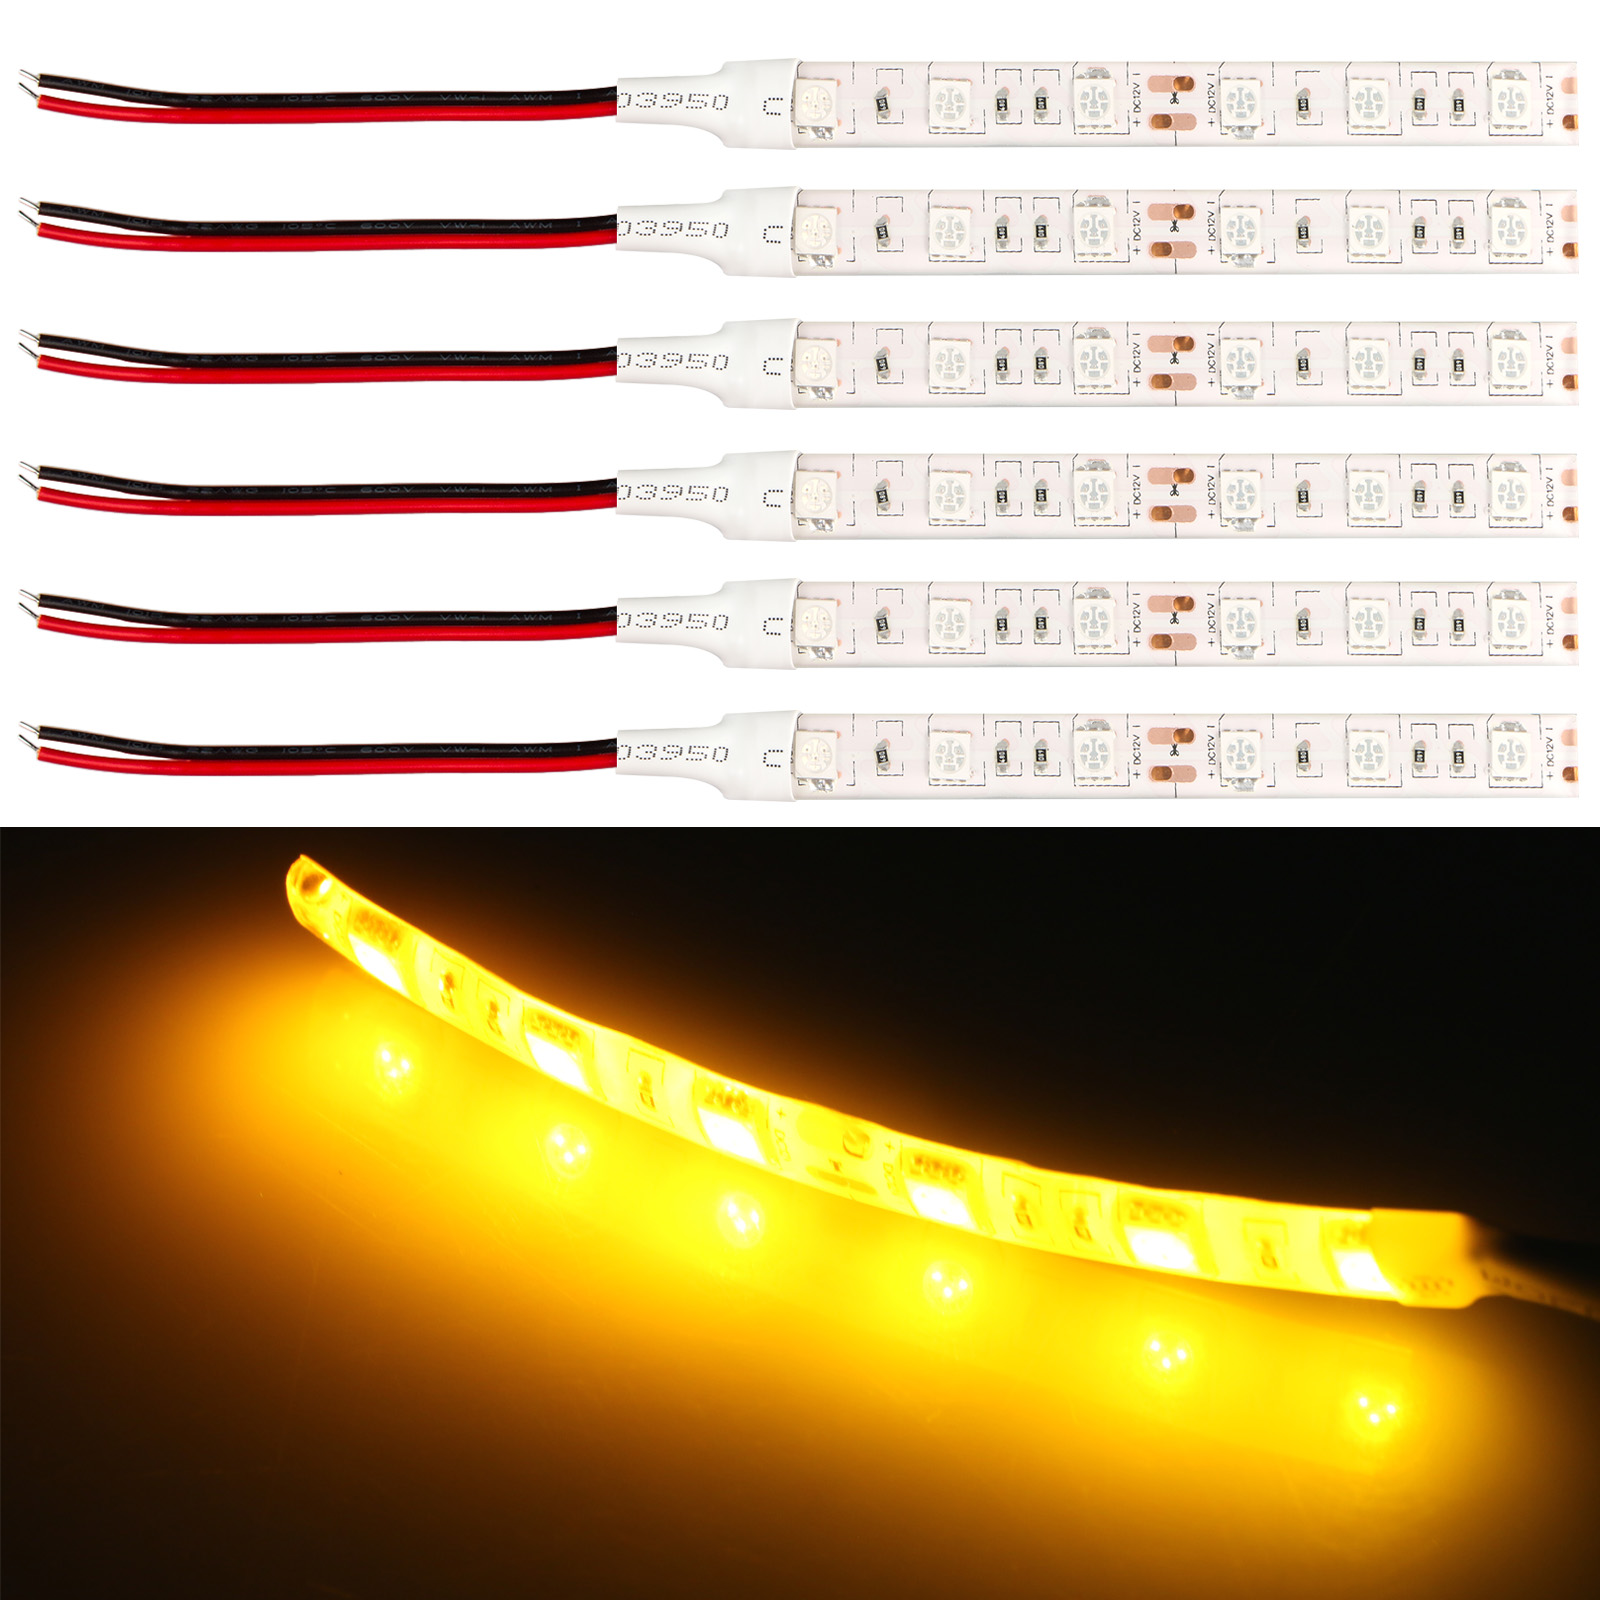 6 Pack Super-bright illumination LED Light 5050 SMD Top LED 10cm Flexible Strip Decorate Lamp Waterproof for Car home ceiling bathroom kitchen lights furniture shelves cupboards